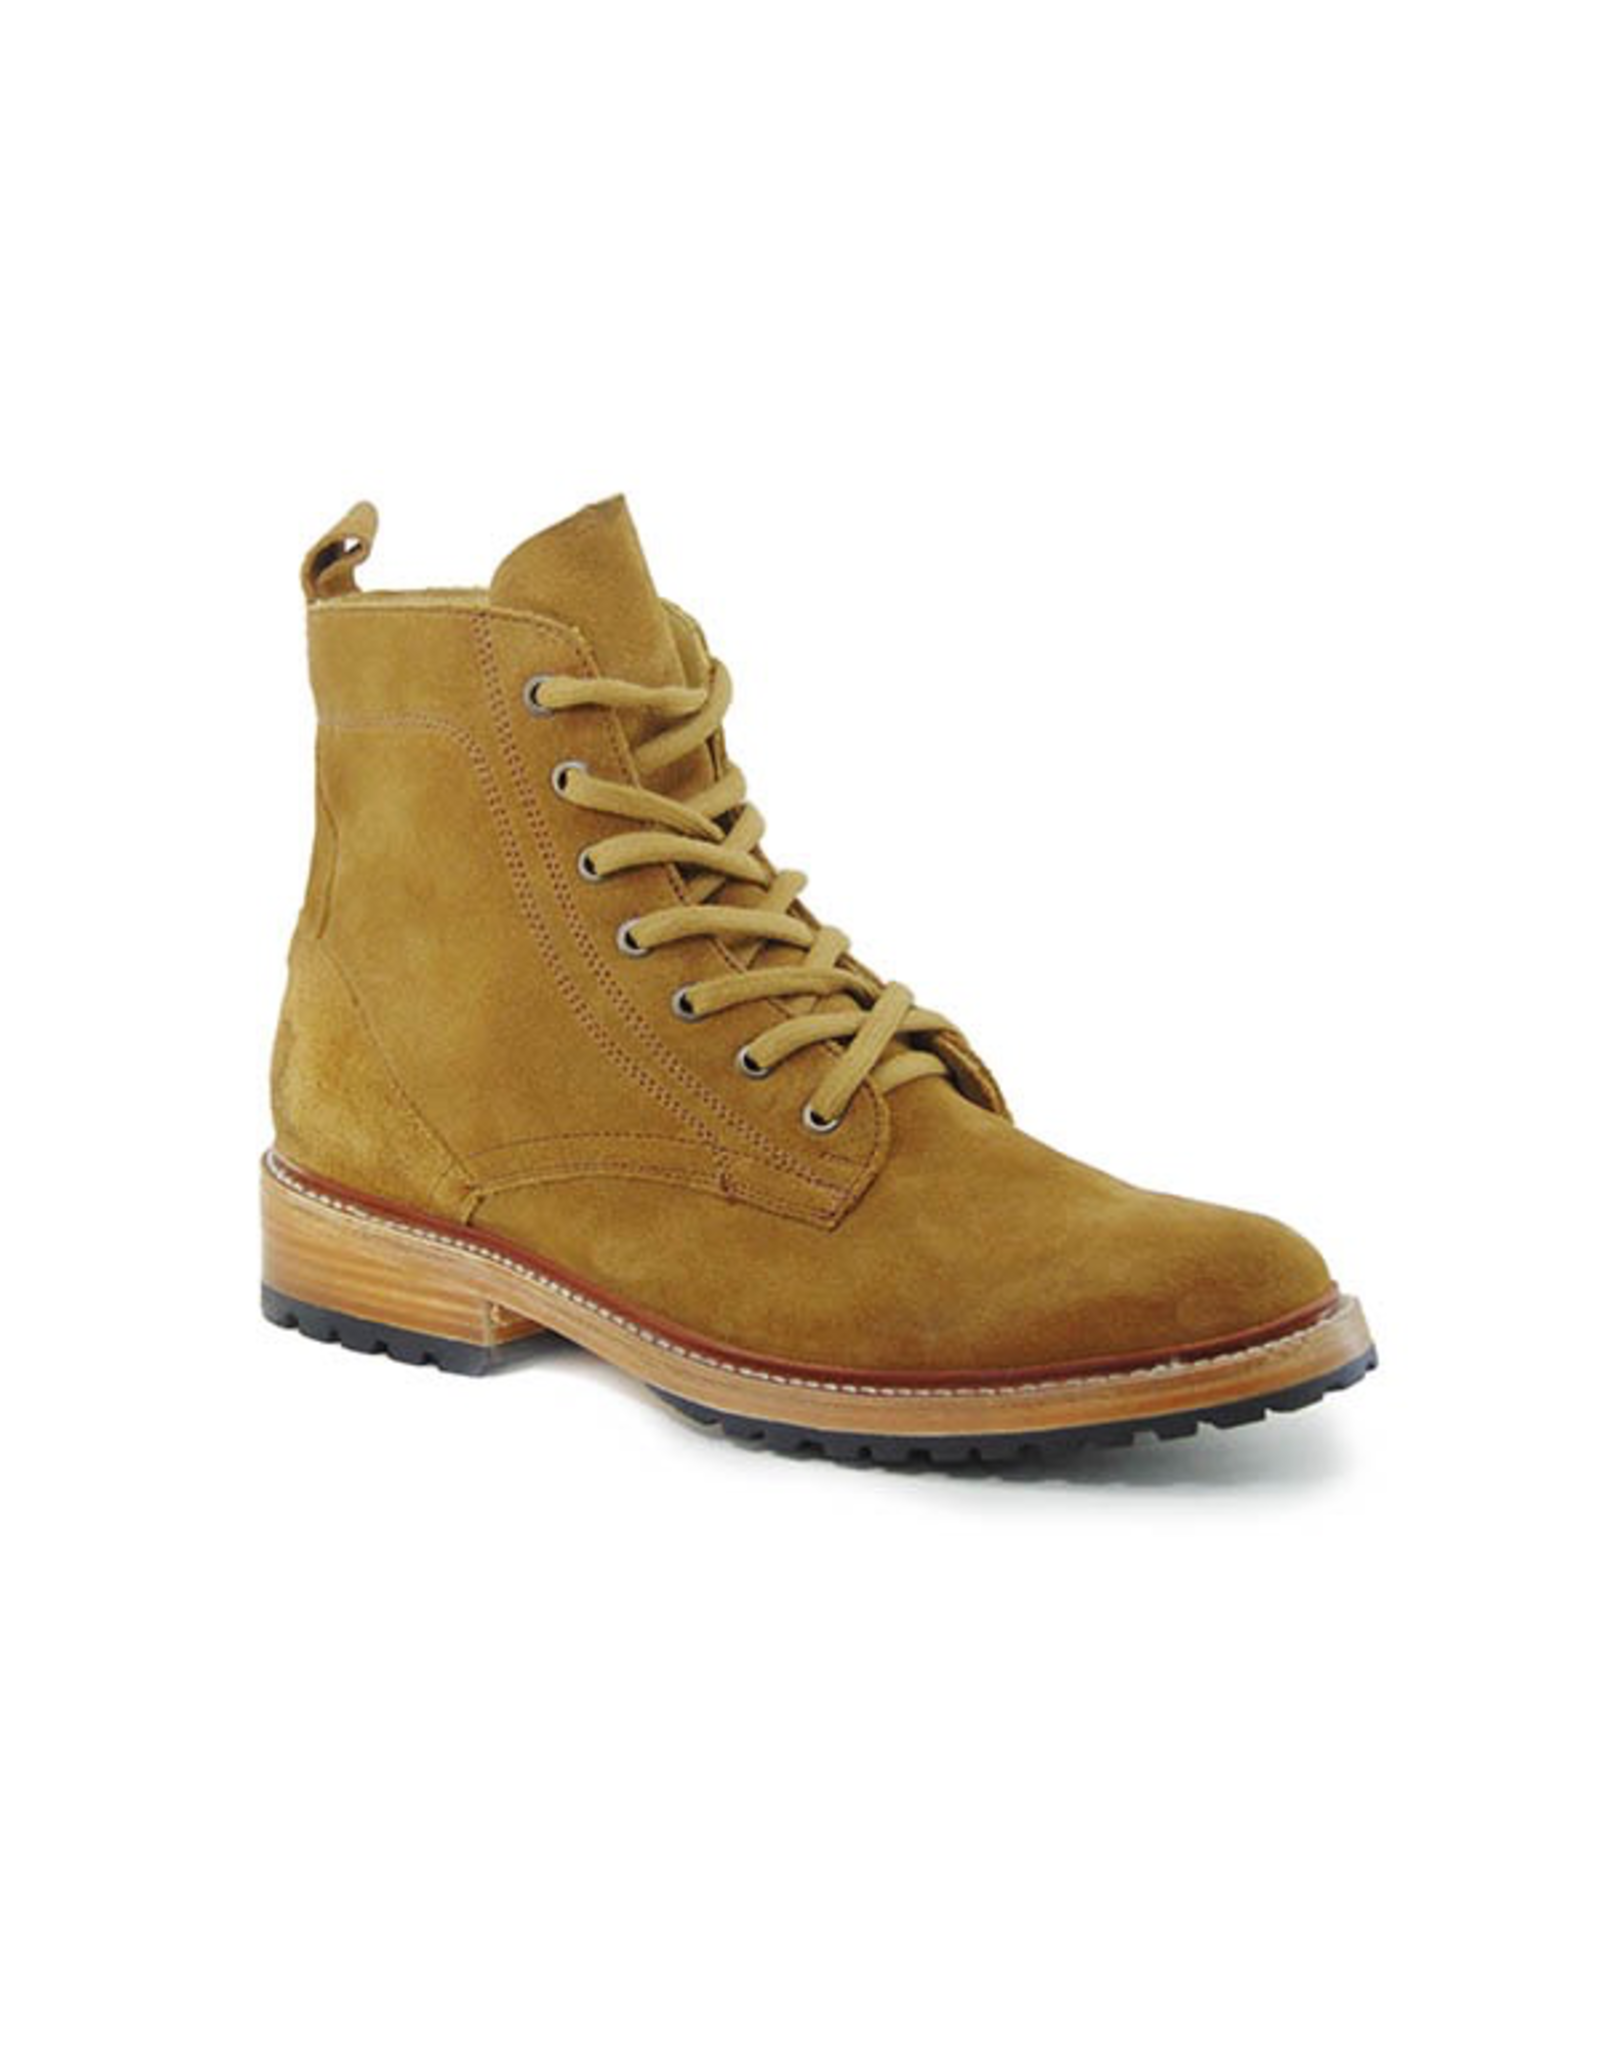 Boots-Men STETSON Suede Chukka  Lace-Up